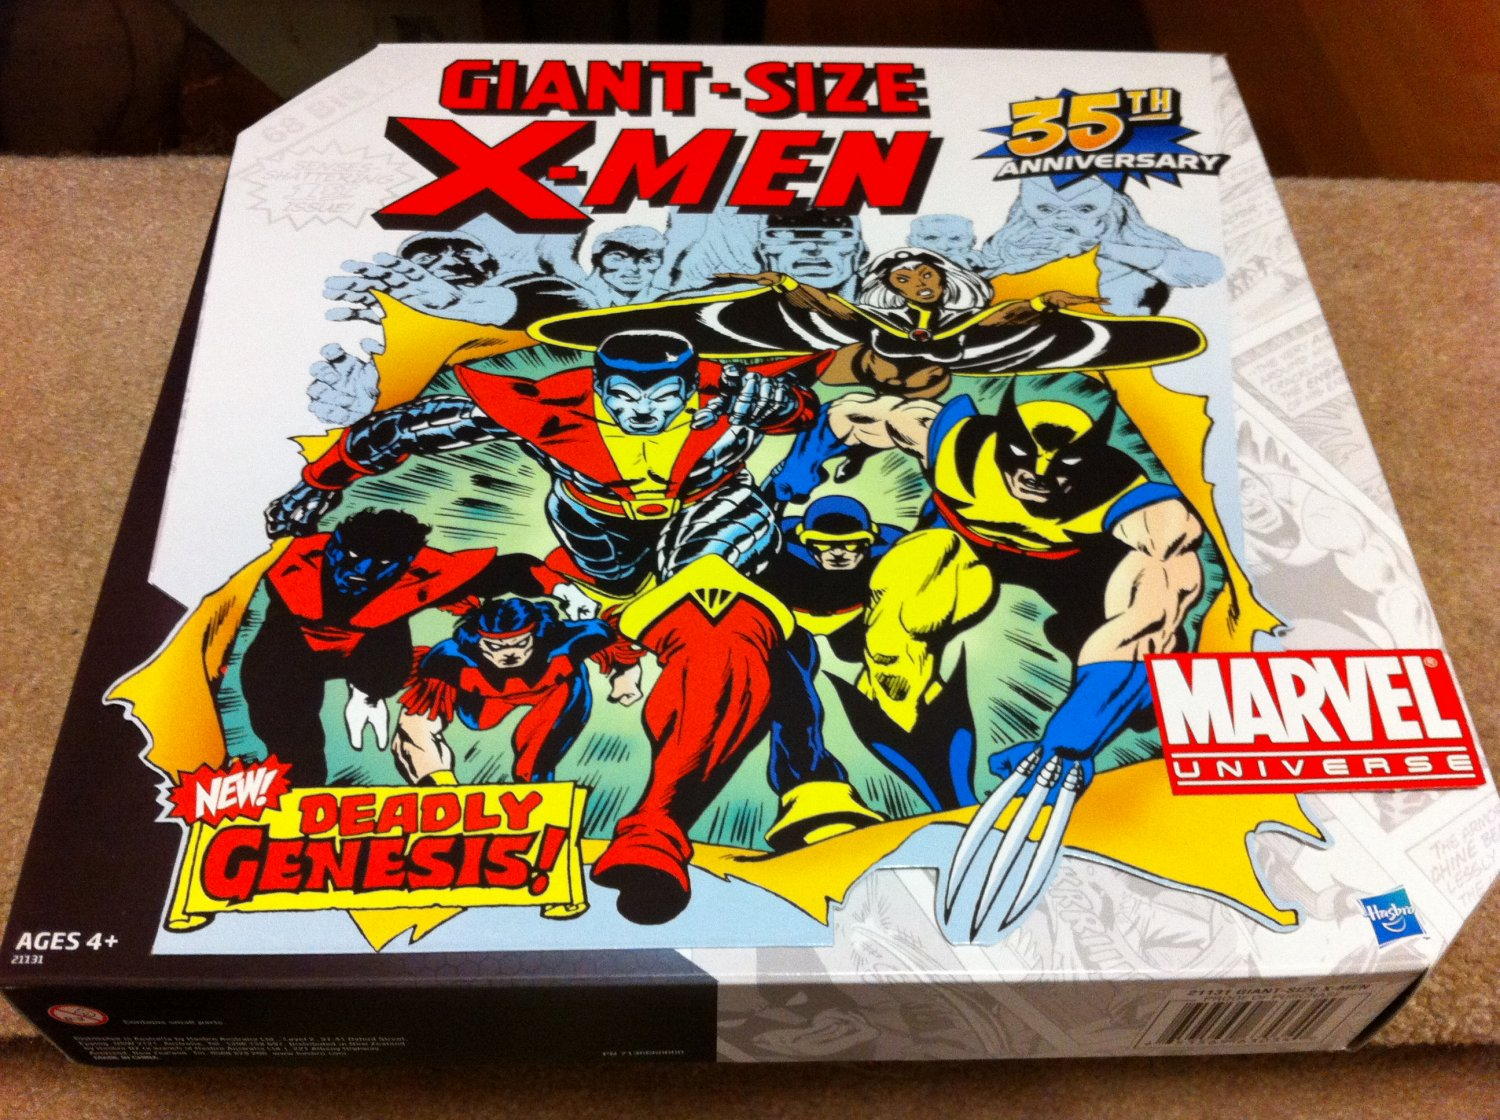 Marvel Universe Giant-Size X-Men 35th Anniv TRU Exclusive